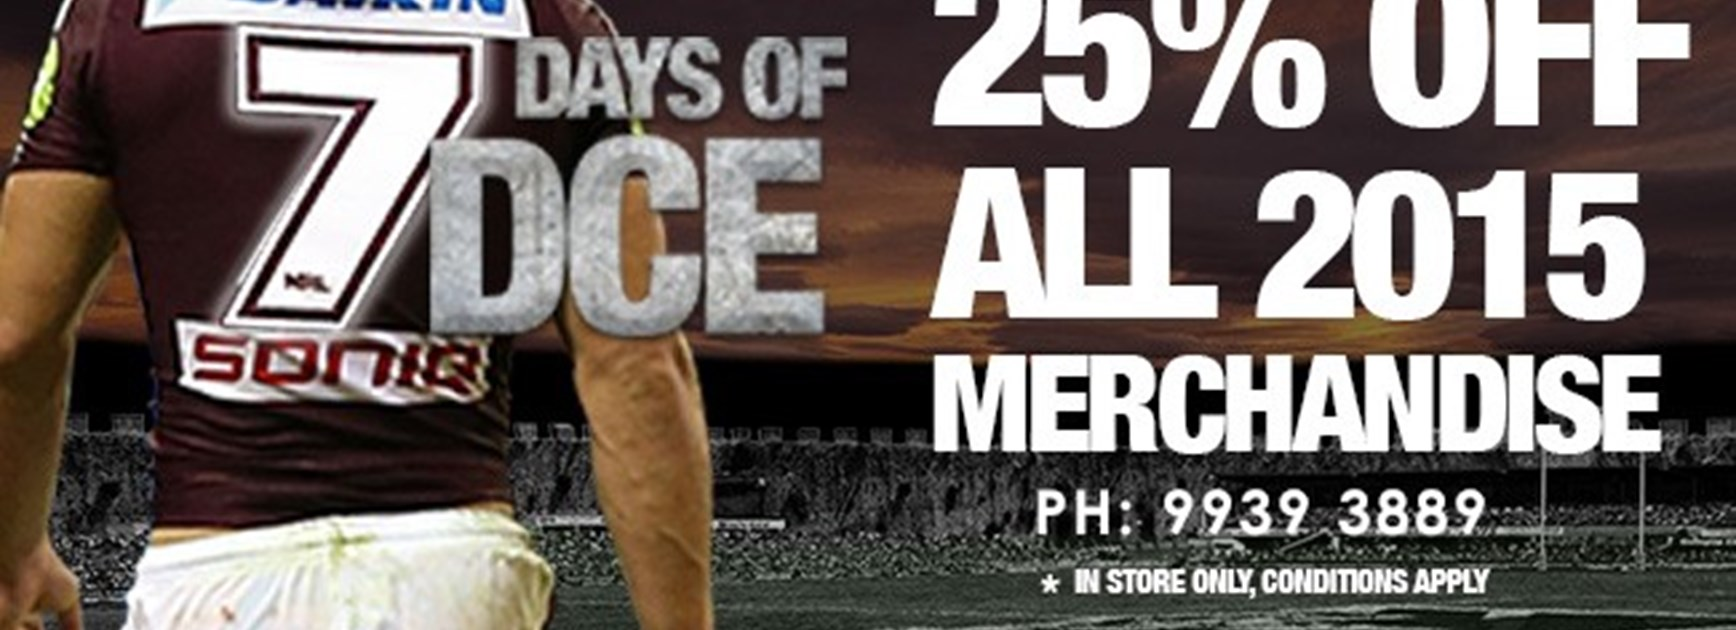 7 days of DCE sale